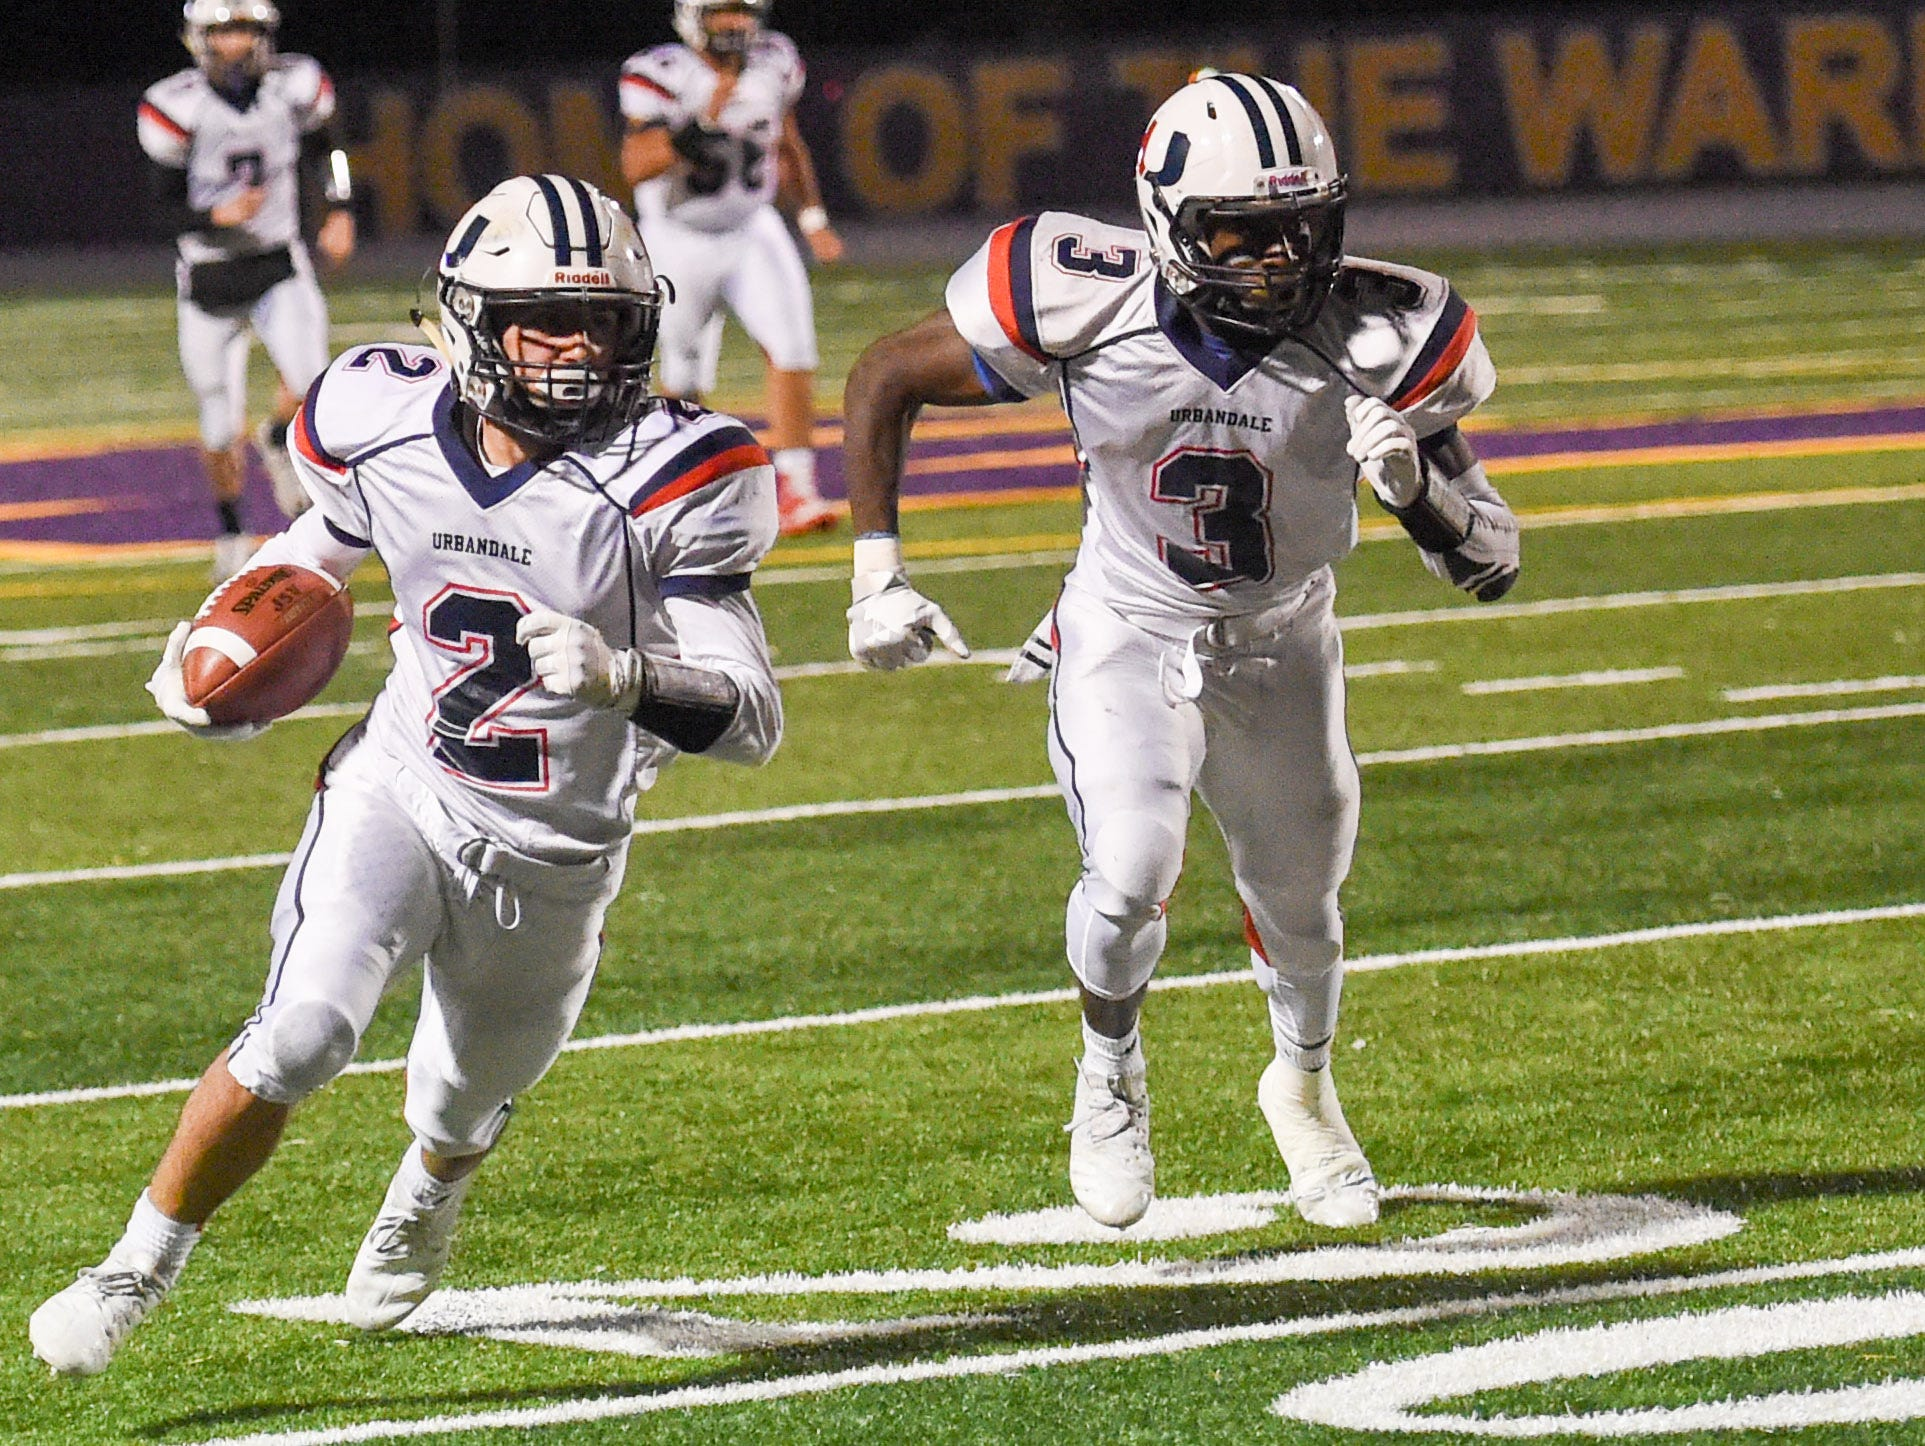 Urbandale's Alex Economos (2) runs the ball as Harrison Waylee (3) blocks on Friday, Oct. 26, 2018 during a playoff game between the Waukee Warriors and the Urbandale J-Hawks at Waukee High School.